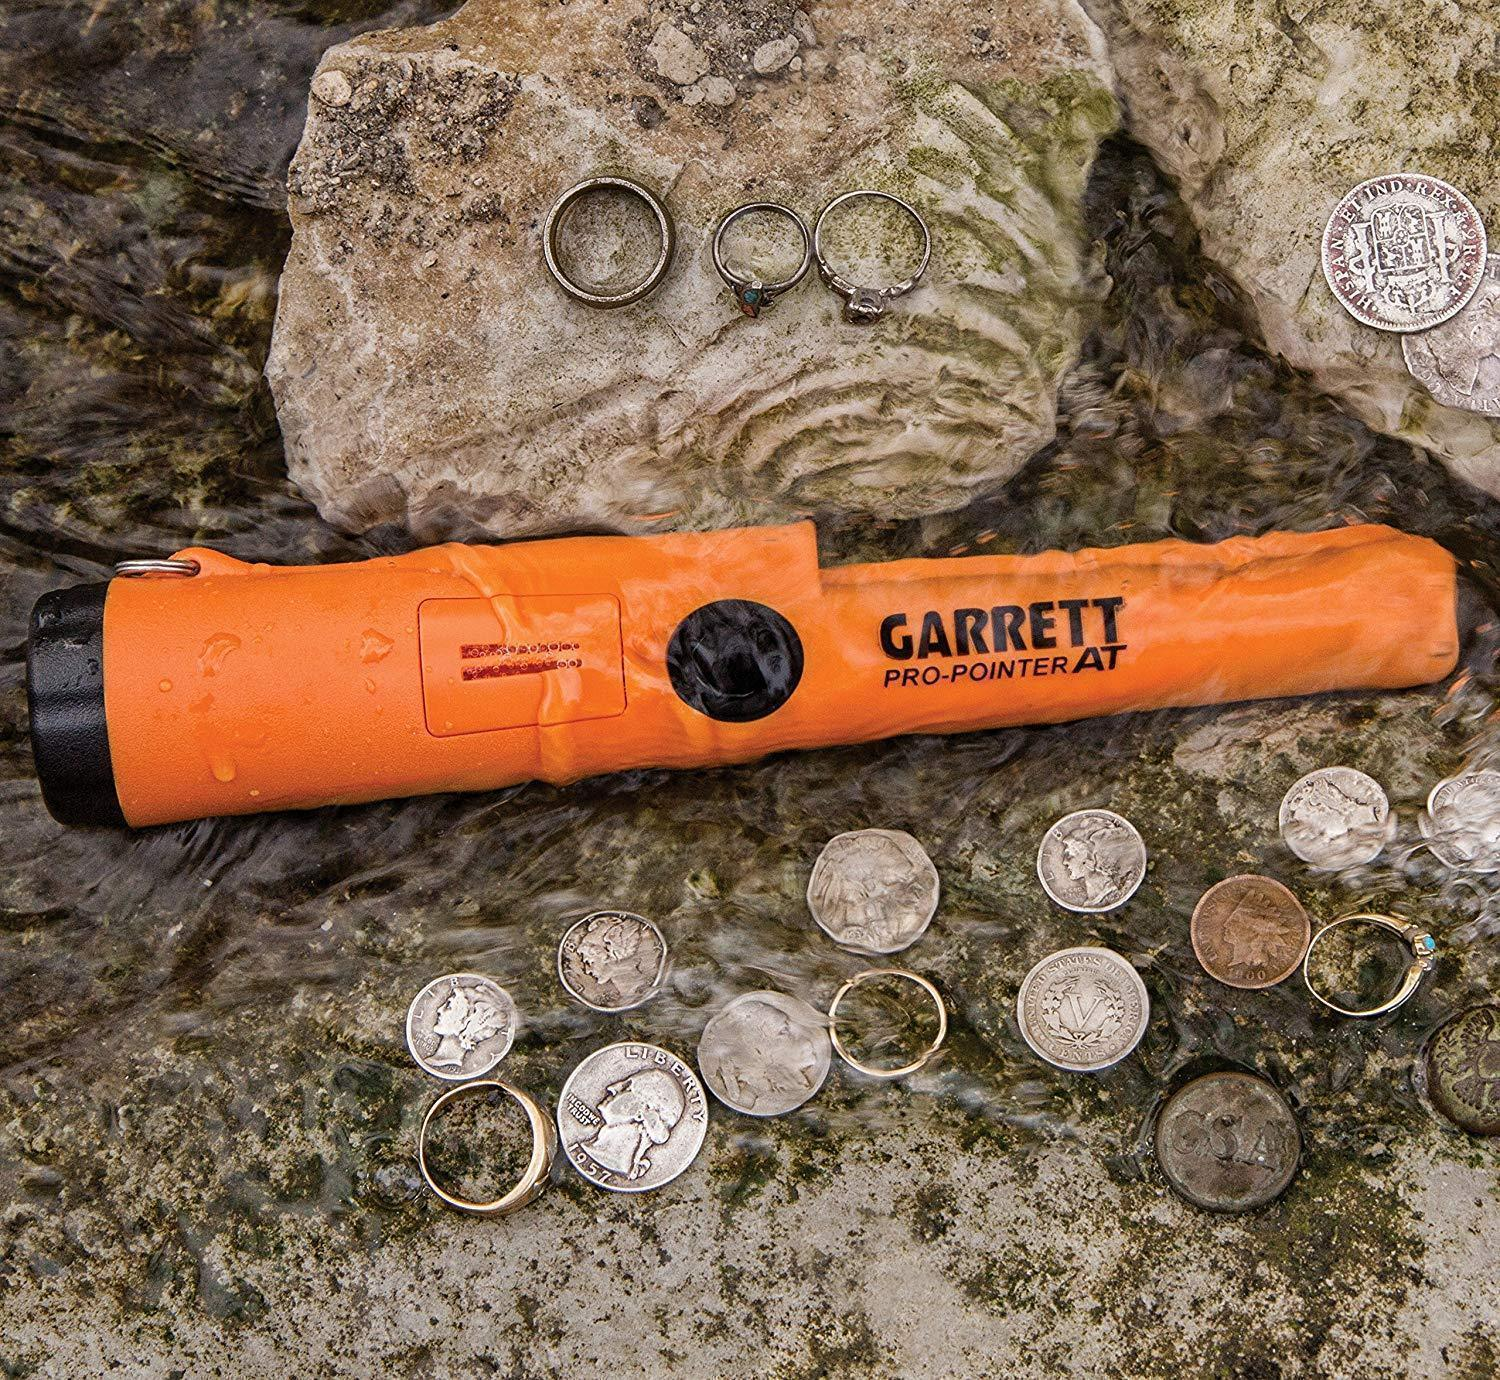 70% OFF ONLY TODAYGarrett 1140900 Pro-Pointer AT Waterproof Pinpointing Metal Detector, Orange